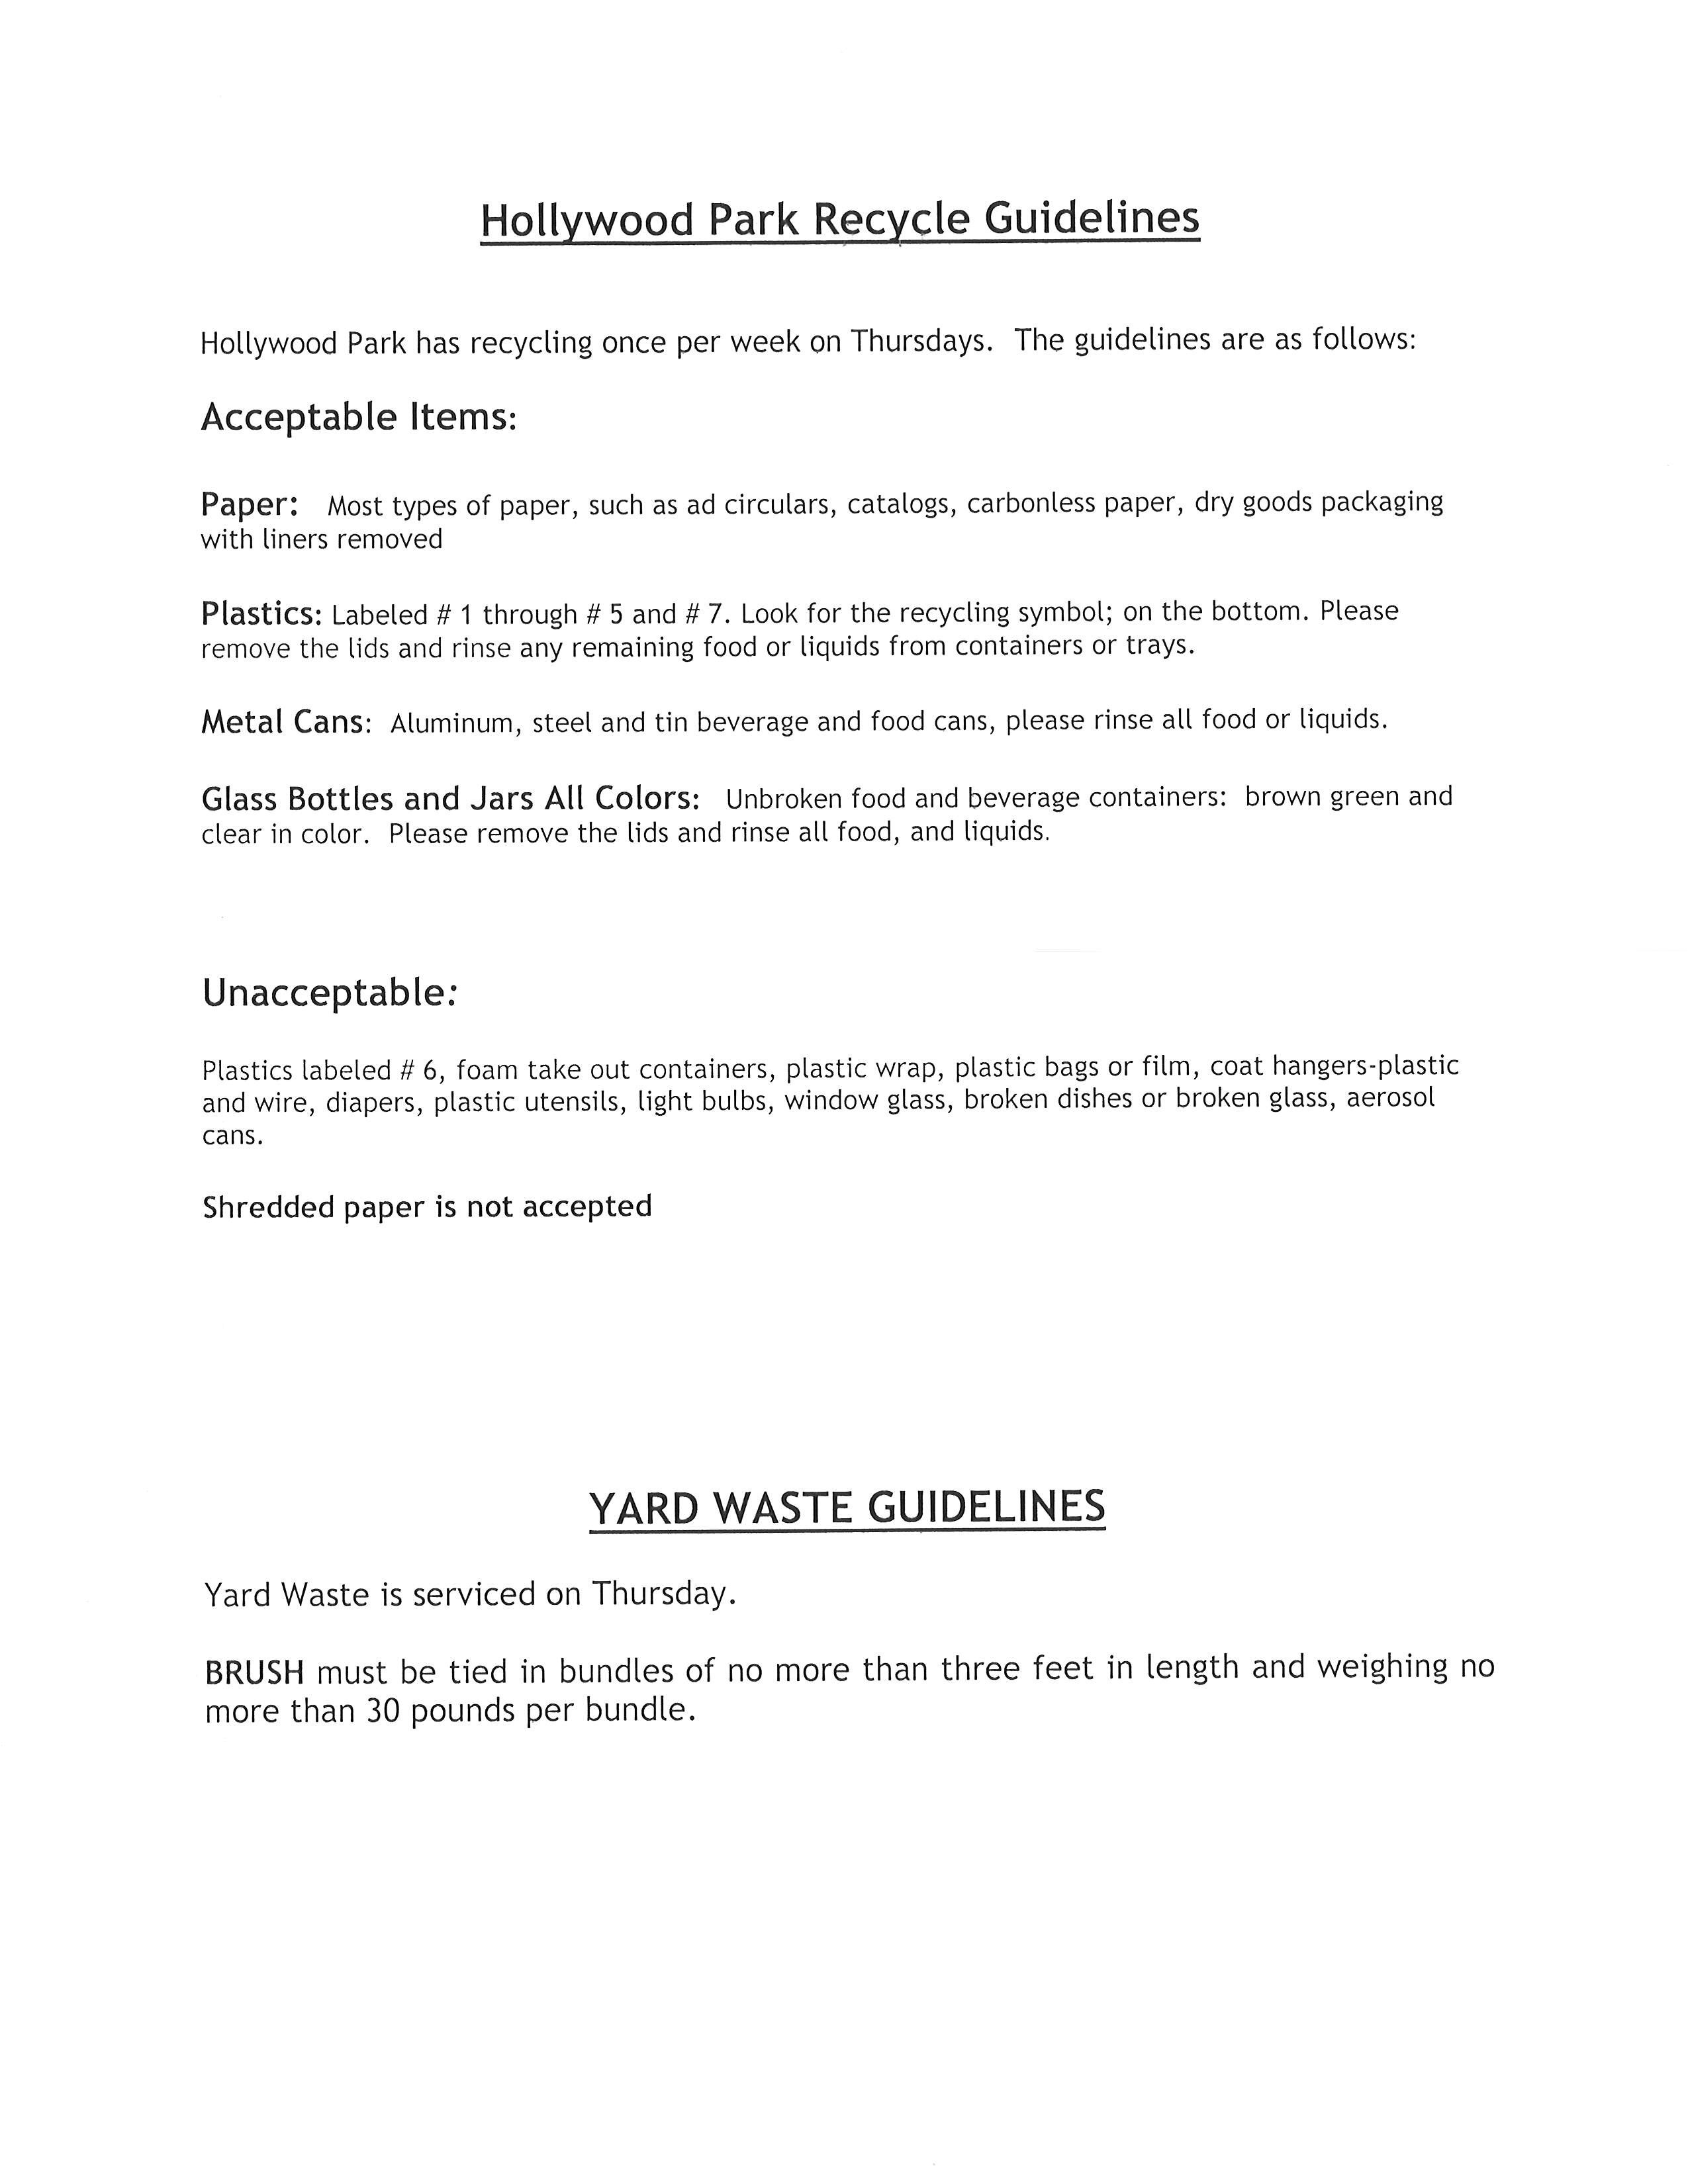 Recycle Guidlines Town Of Hollywood Park The Official Website